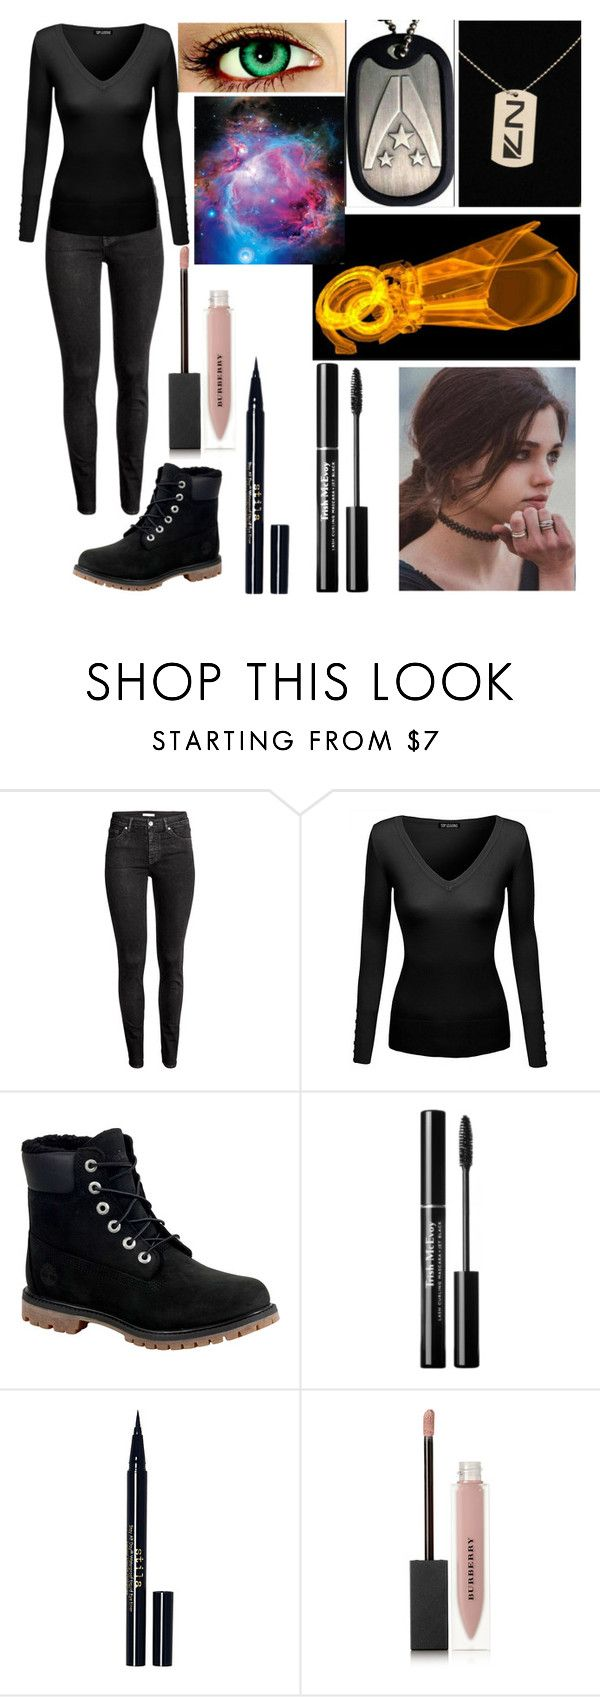 """""""Tiala Rosunae"""" by s-cleer ❤ liked on Polyvore featuring H&M, Timberland, Stila and Burberry"""